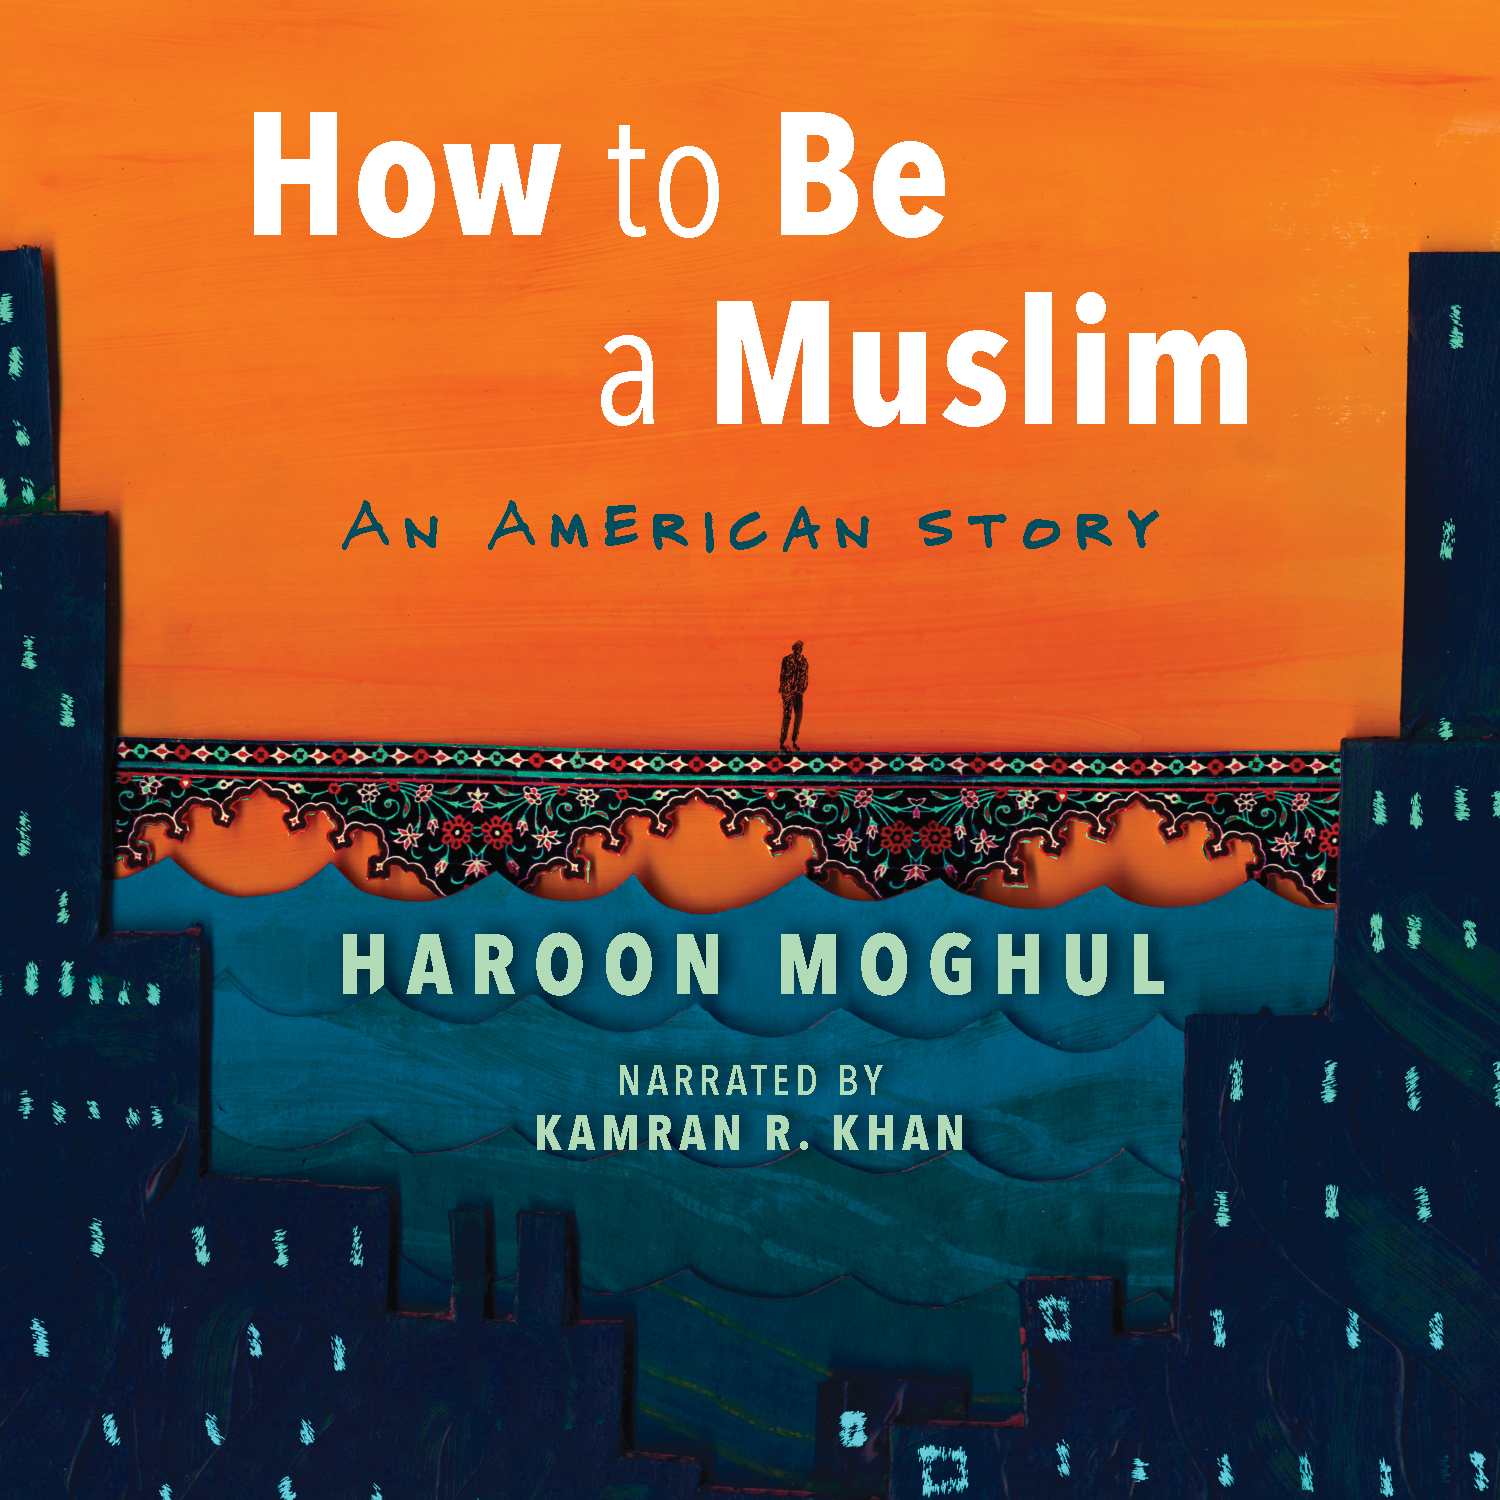 Haroon Moghul - How to Be a Muslim